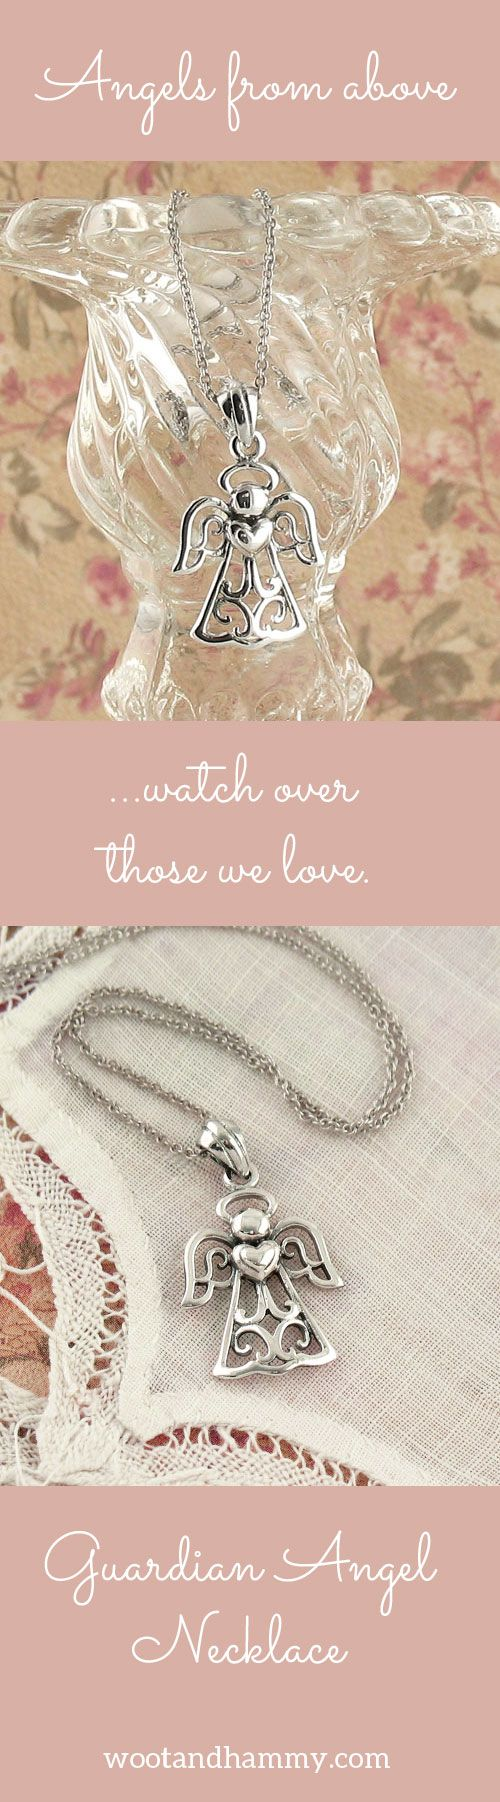 707 best Jewelry images on Pinterest | Jewelry, Jewelry accessories ...